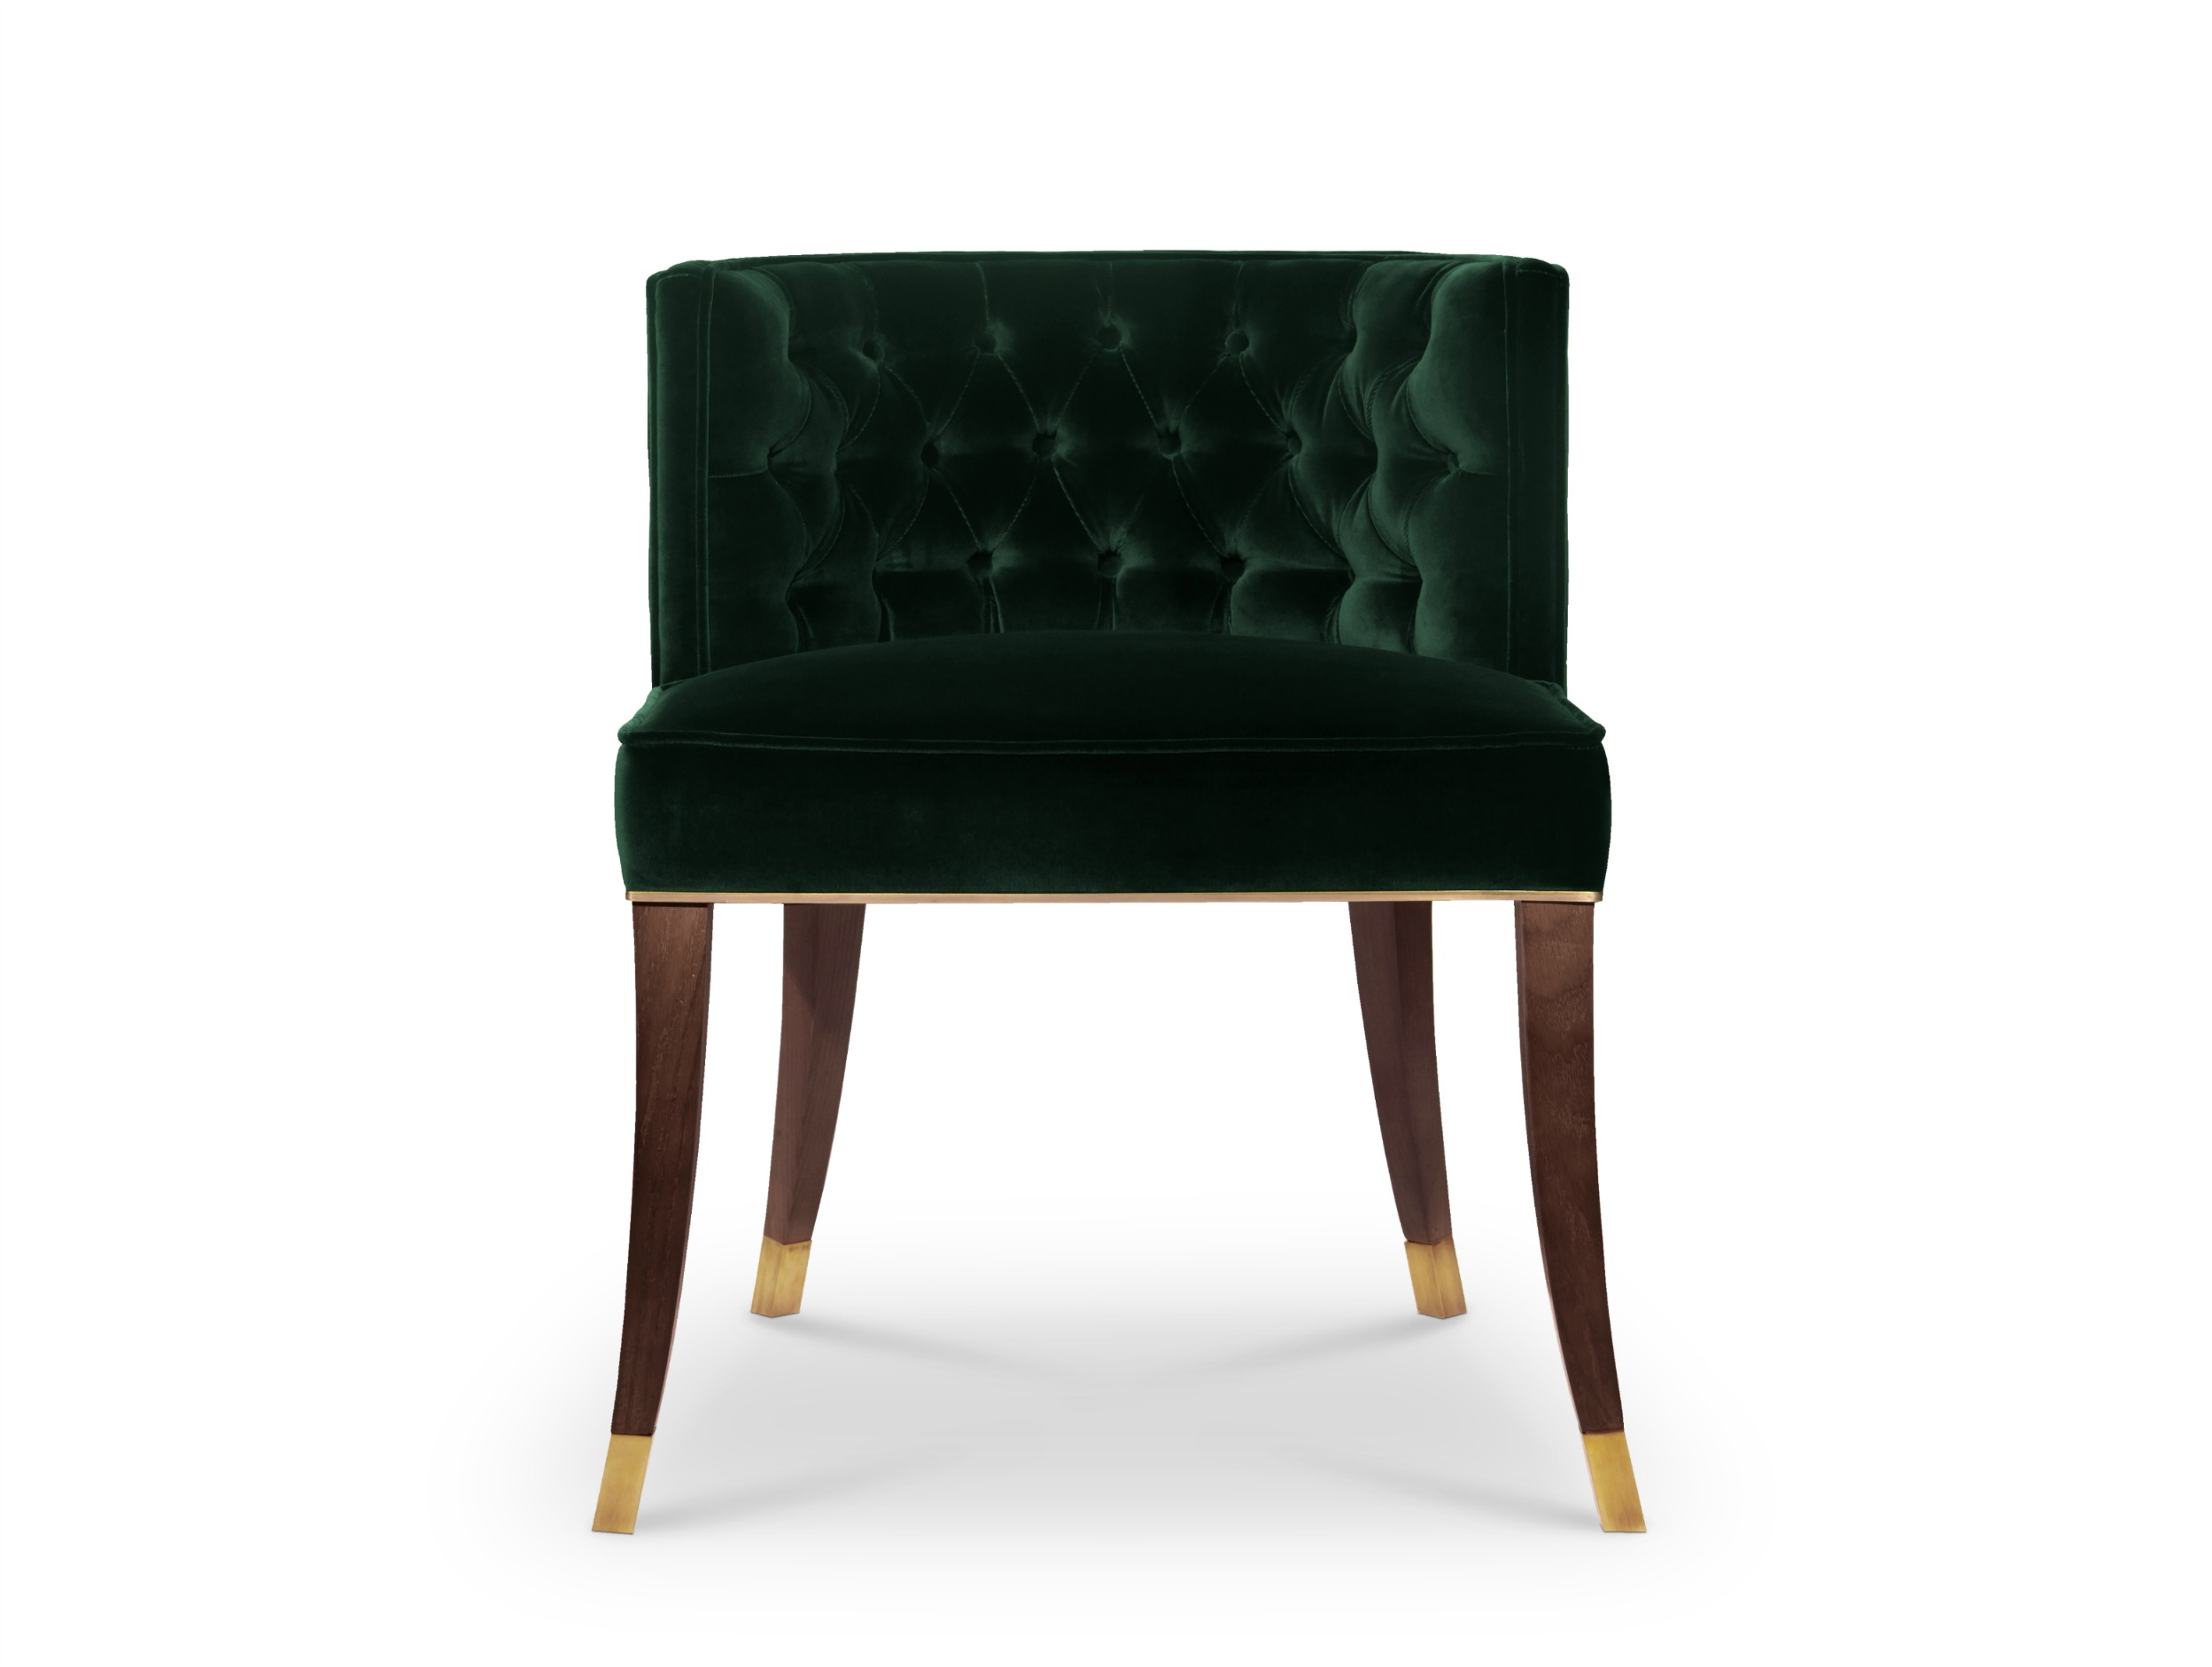 Maison et Objet 2020 maison et objet 2020 Maison et Objet 2020: The Best of Modern Chairs Maison et Objet 2020 The Best of Modern Chairs 2